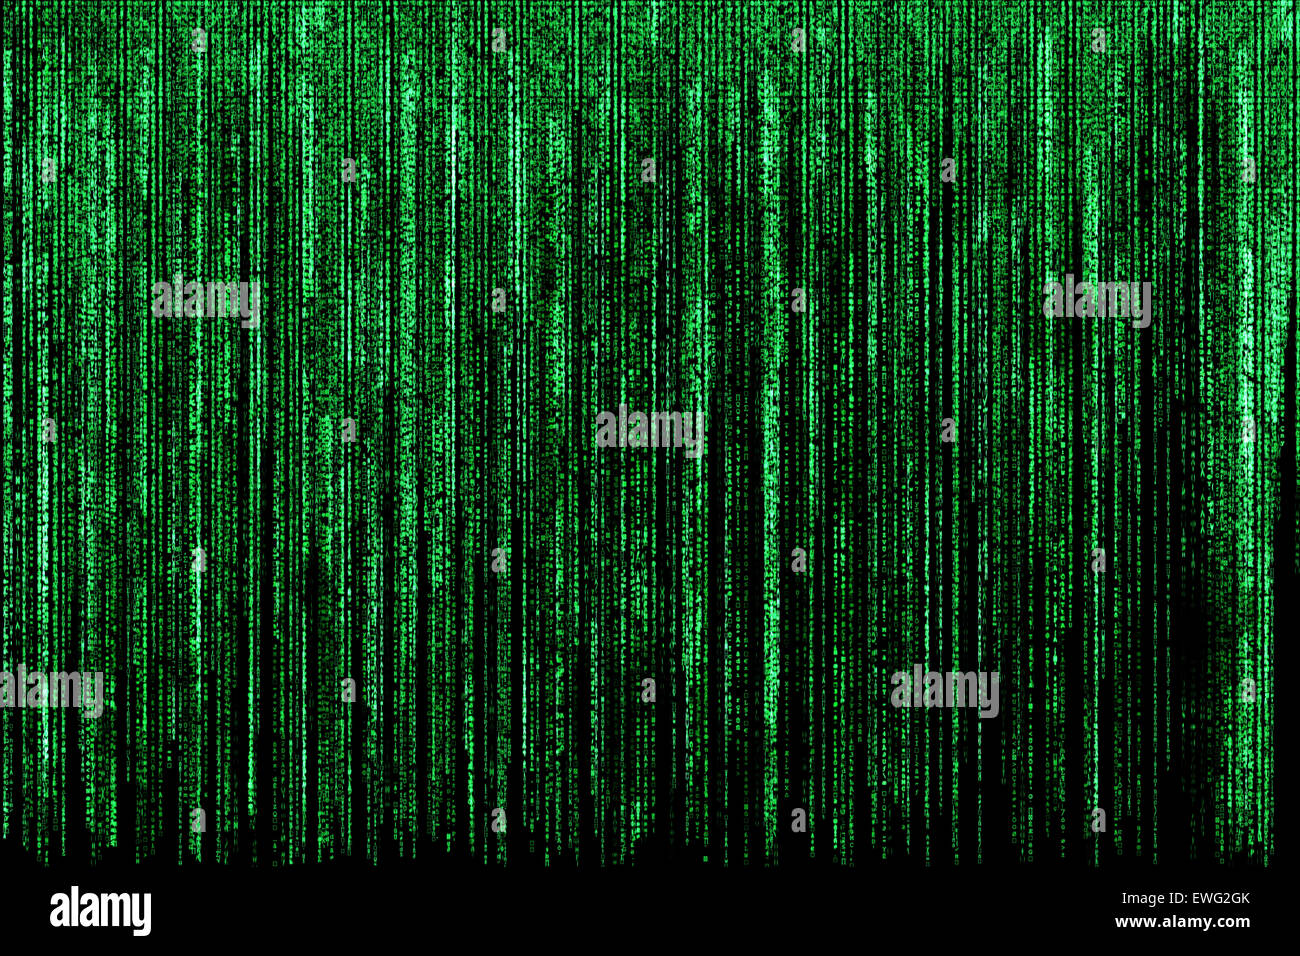 Matrix background - Stock Image